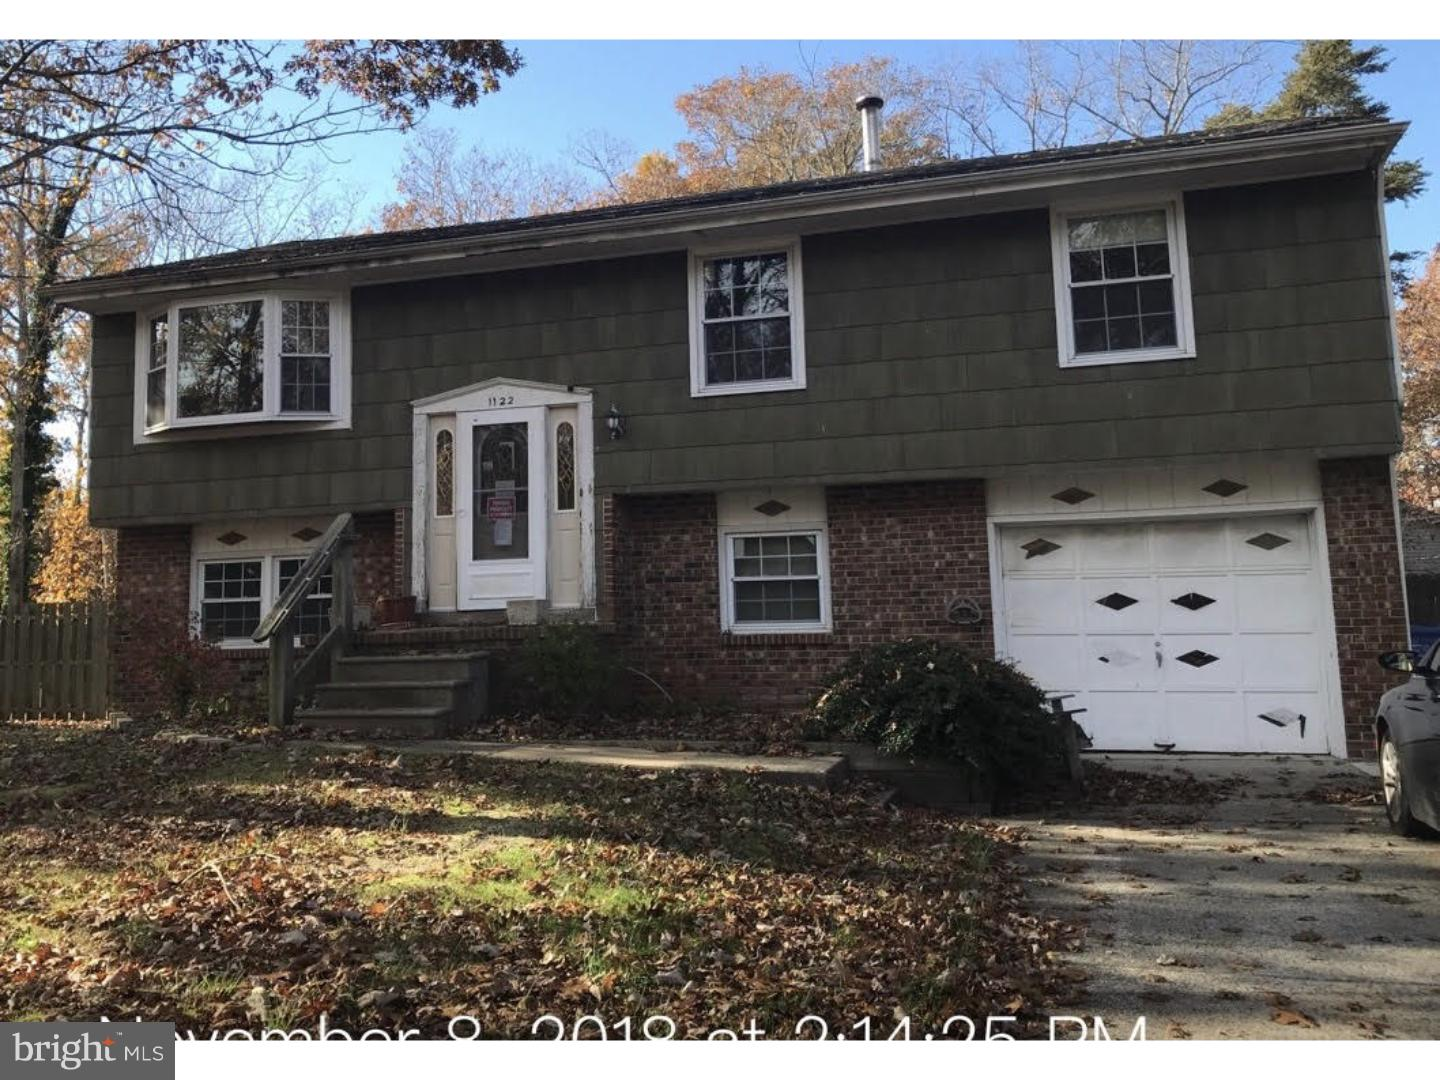 1122 STAGECOACH ROAD, OCEAN VIEW, NJ 08230